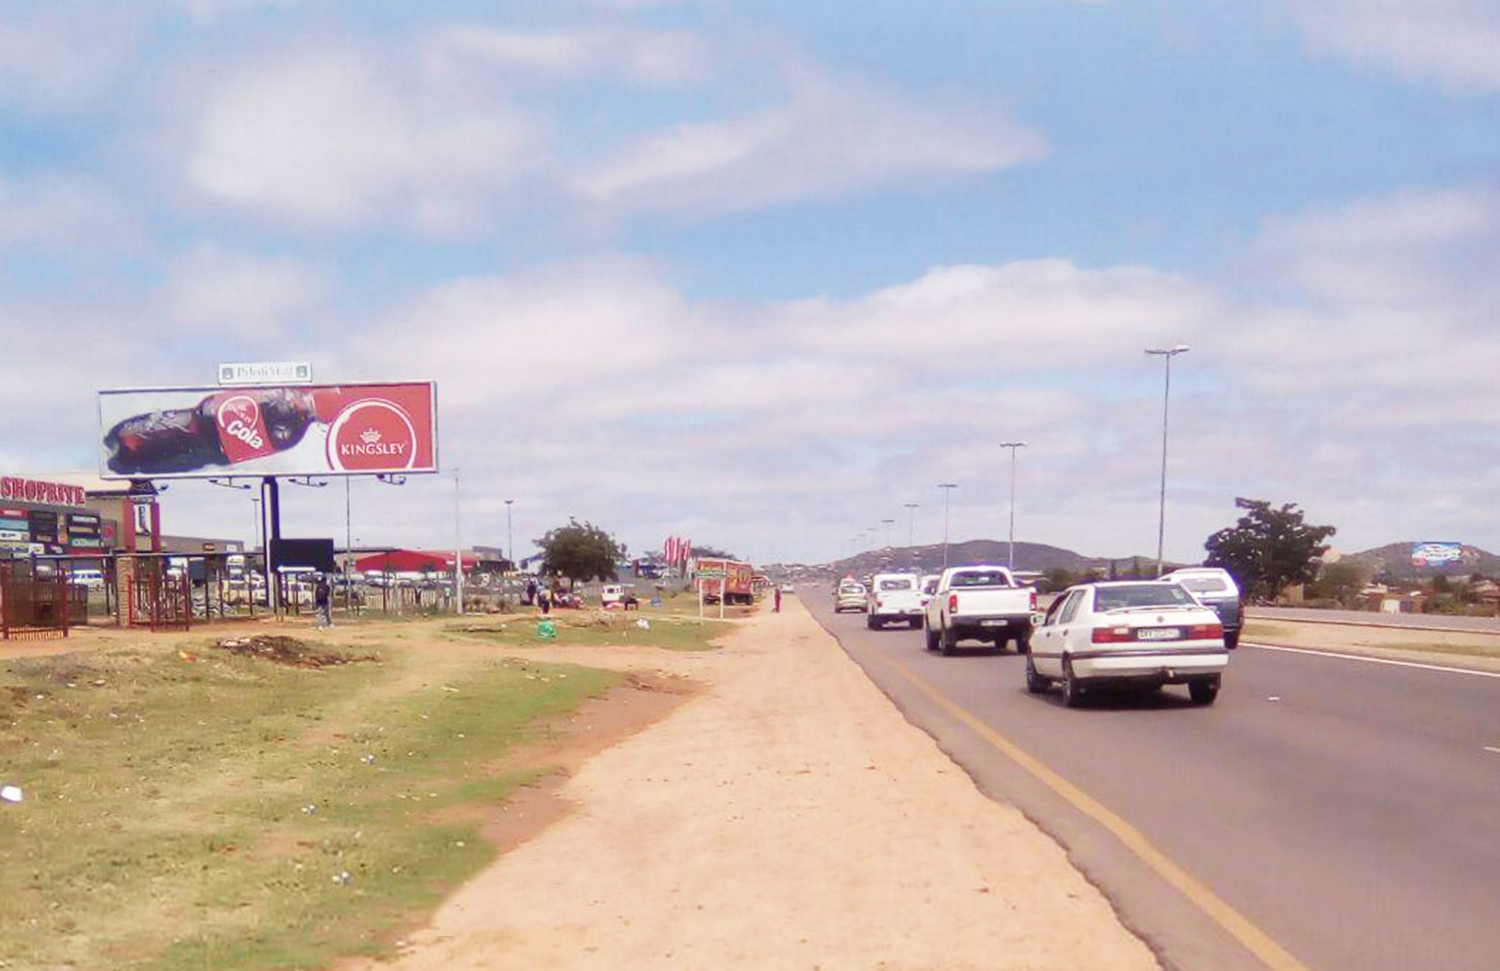 Billboard at Paledi Mall Mankweng Limpopo. Advertise at Paledi Mall Limpopo.